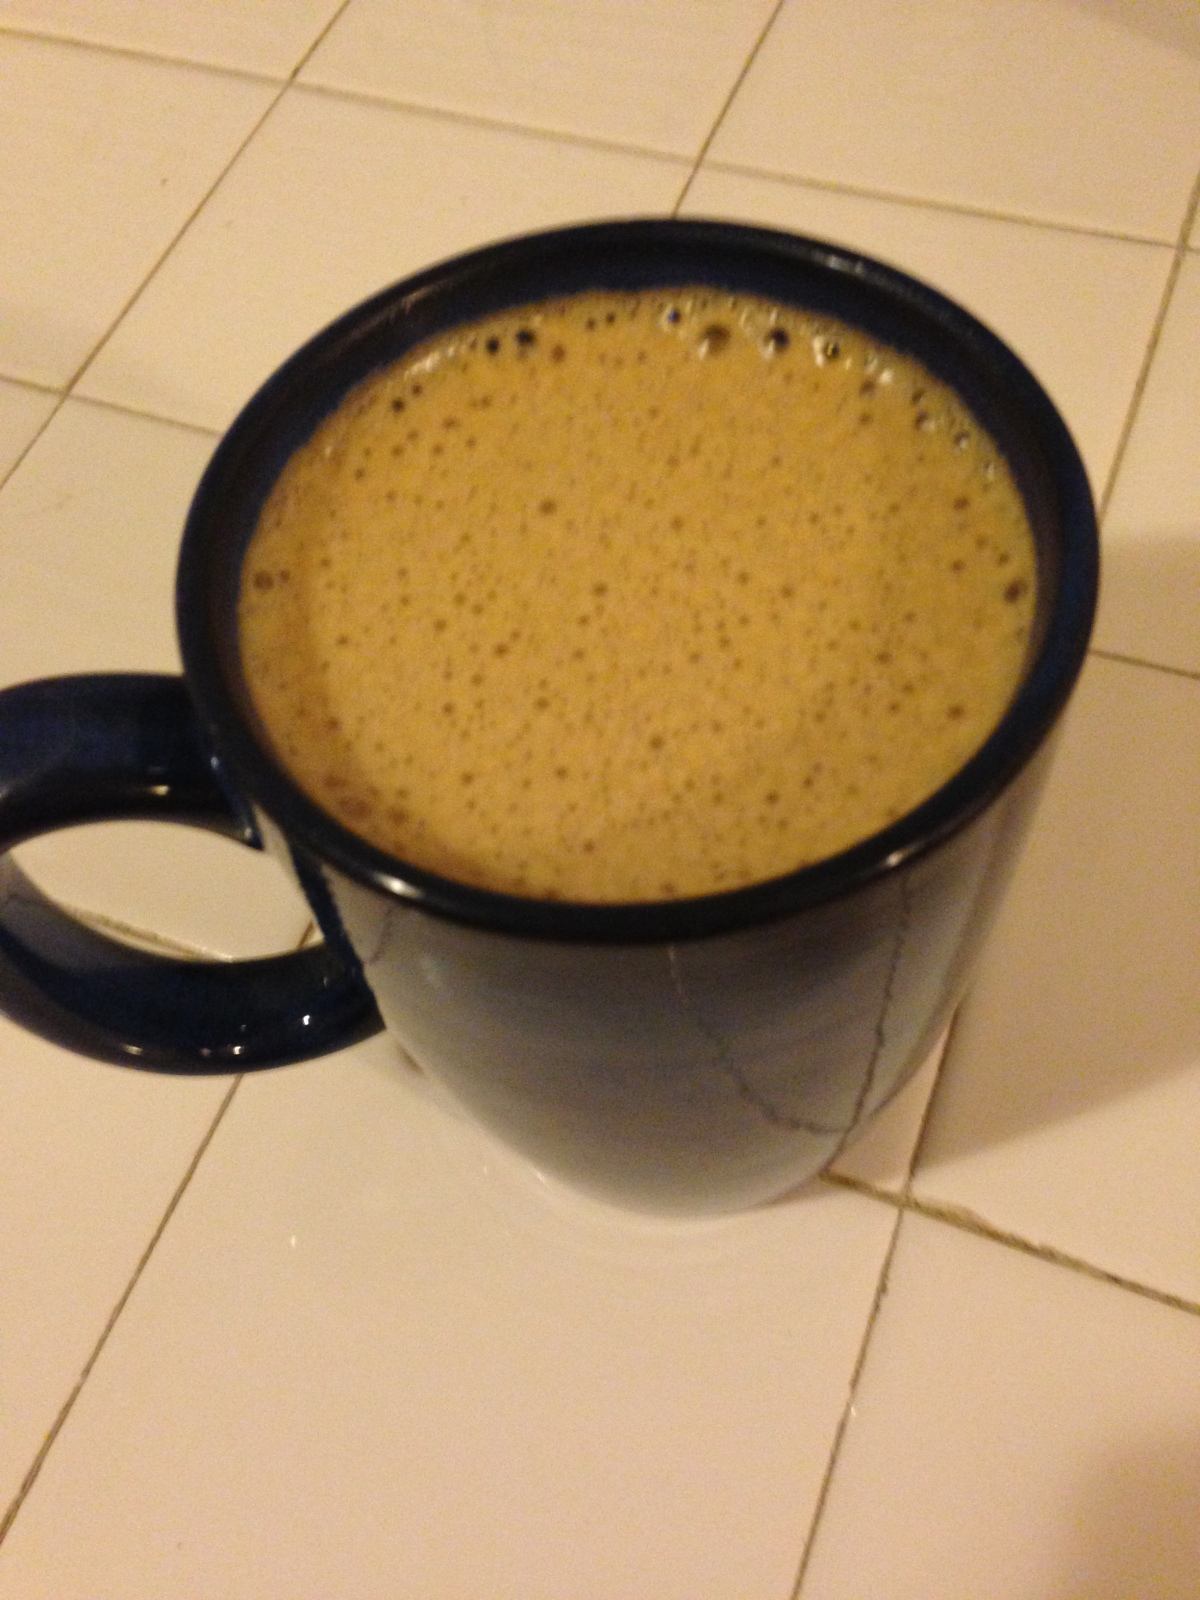 Why I Put Oil in my Coffee & How I Lost 35Pounds